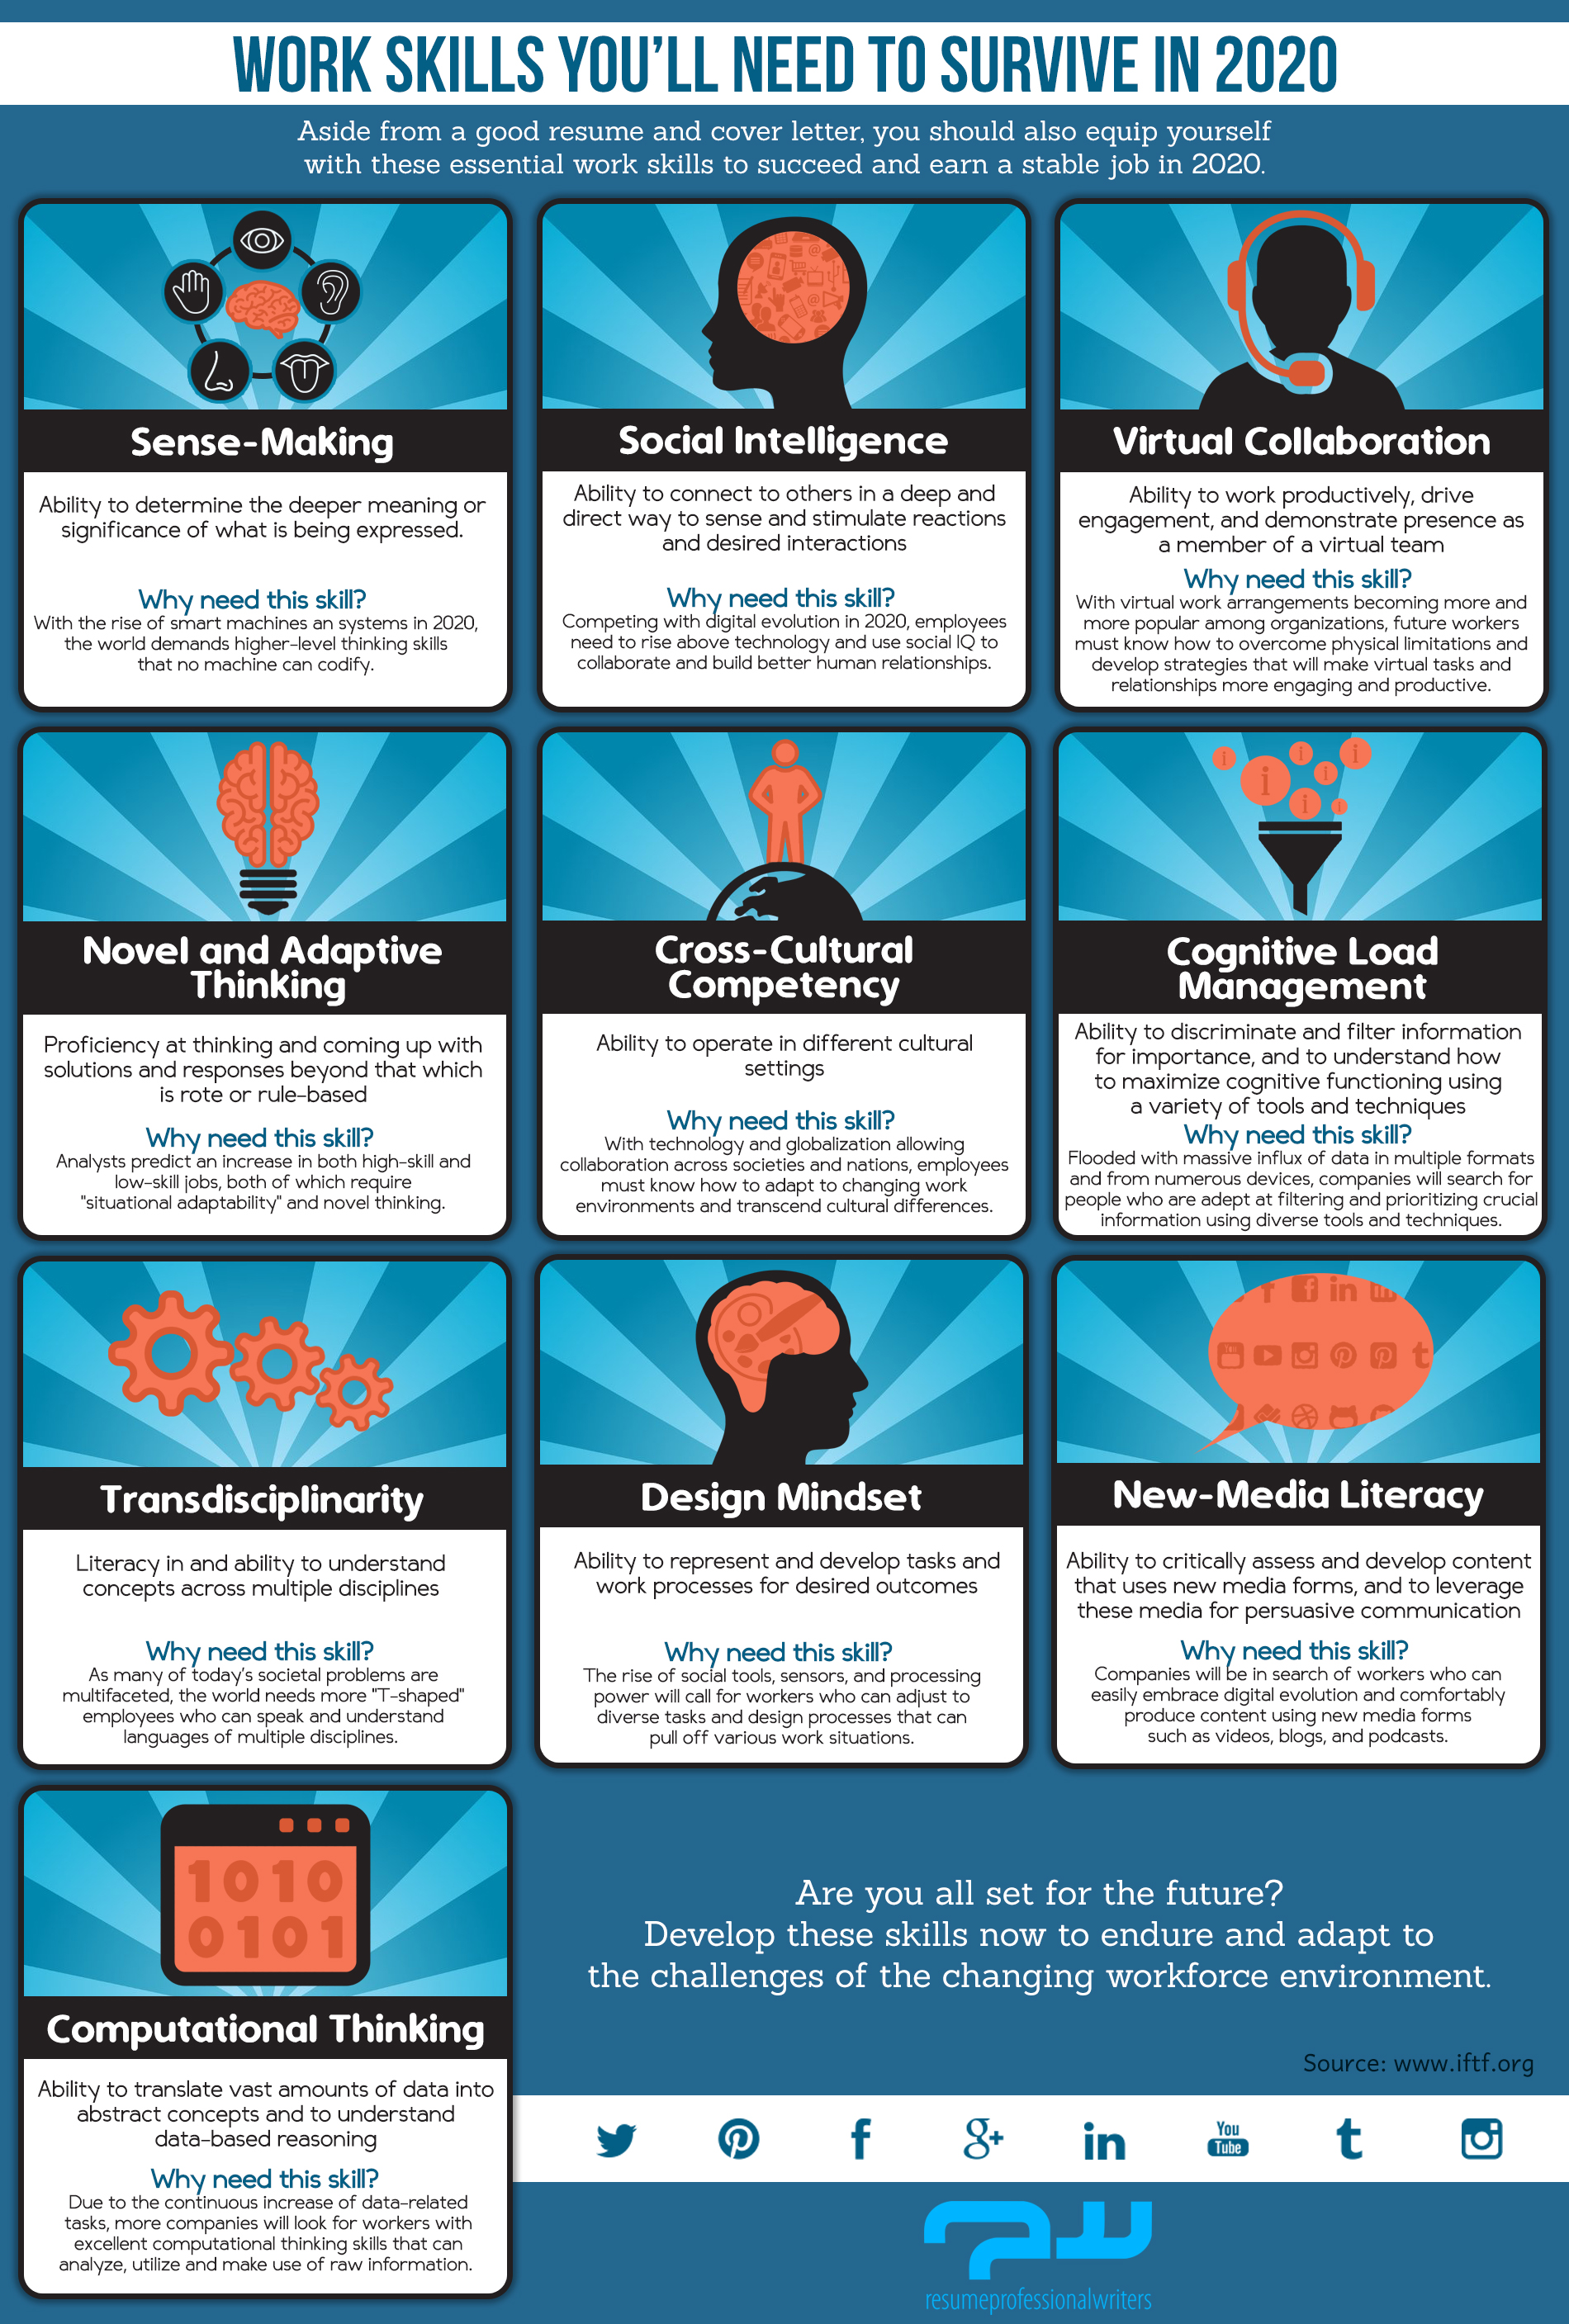 Work Skills You Will Need to Survive in 2020 [Infographic]